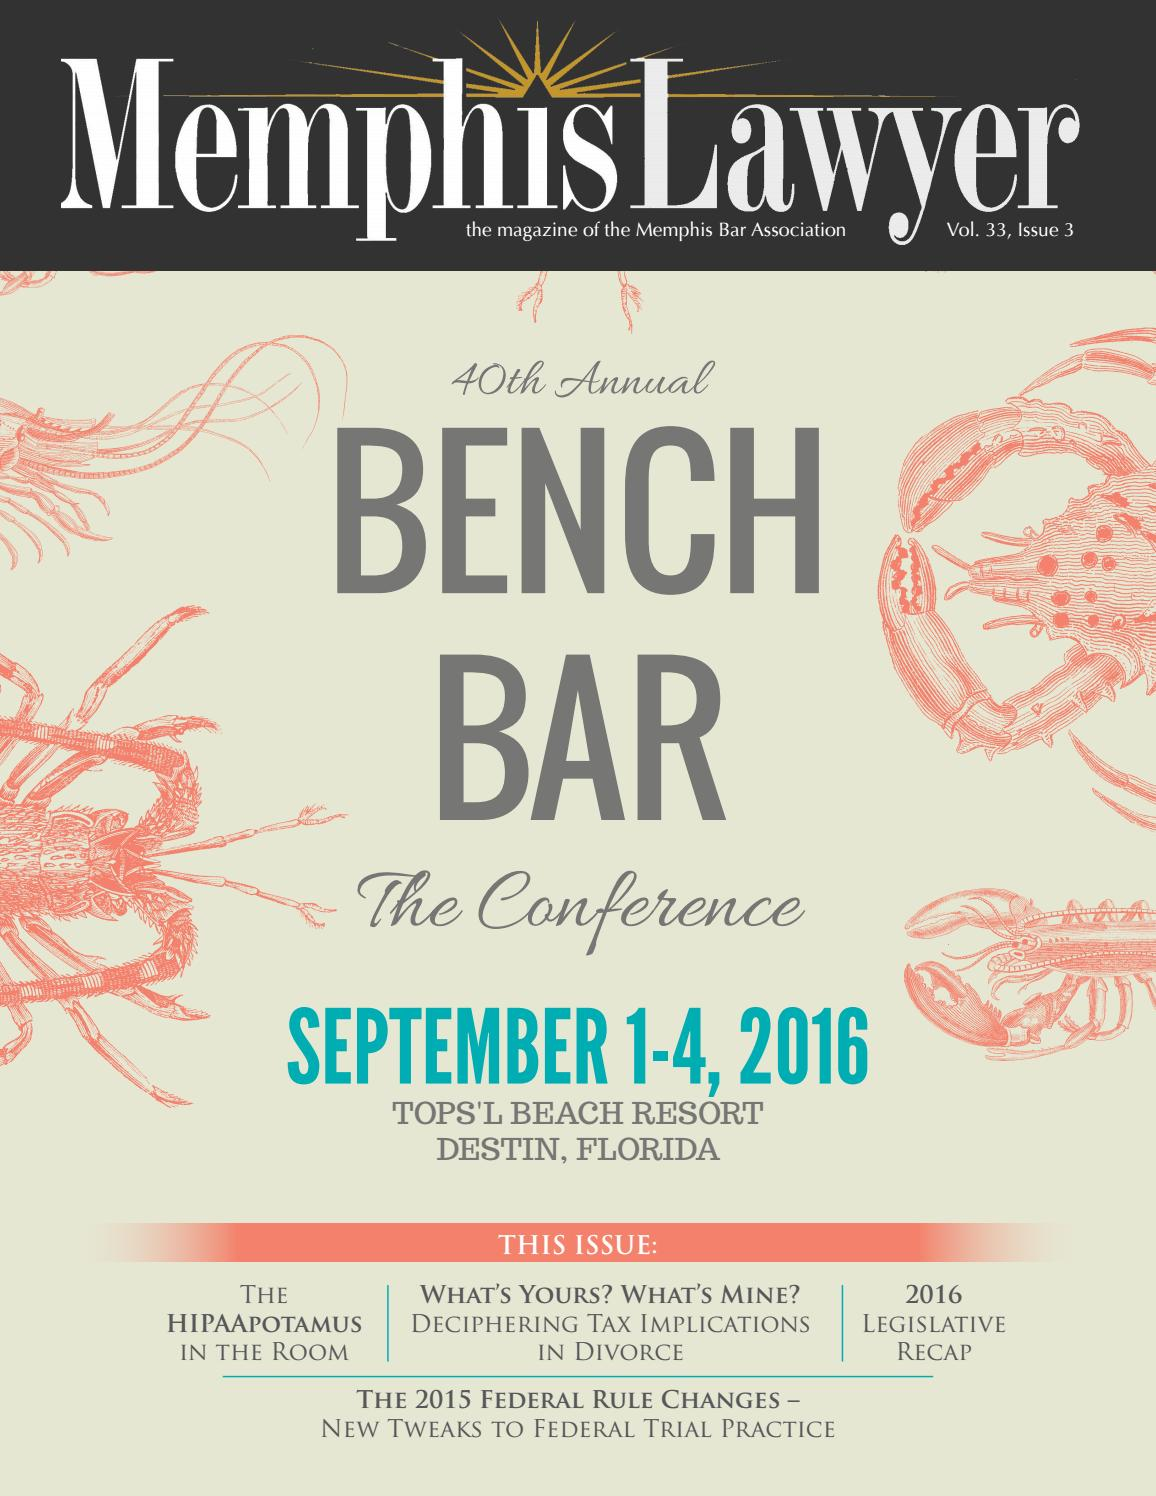 Memphis Lawyer Volume 33, Issue 3 by Memphis Bar Association